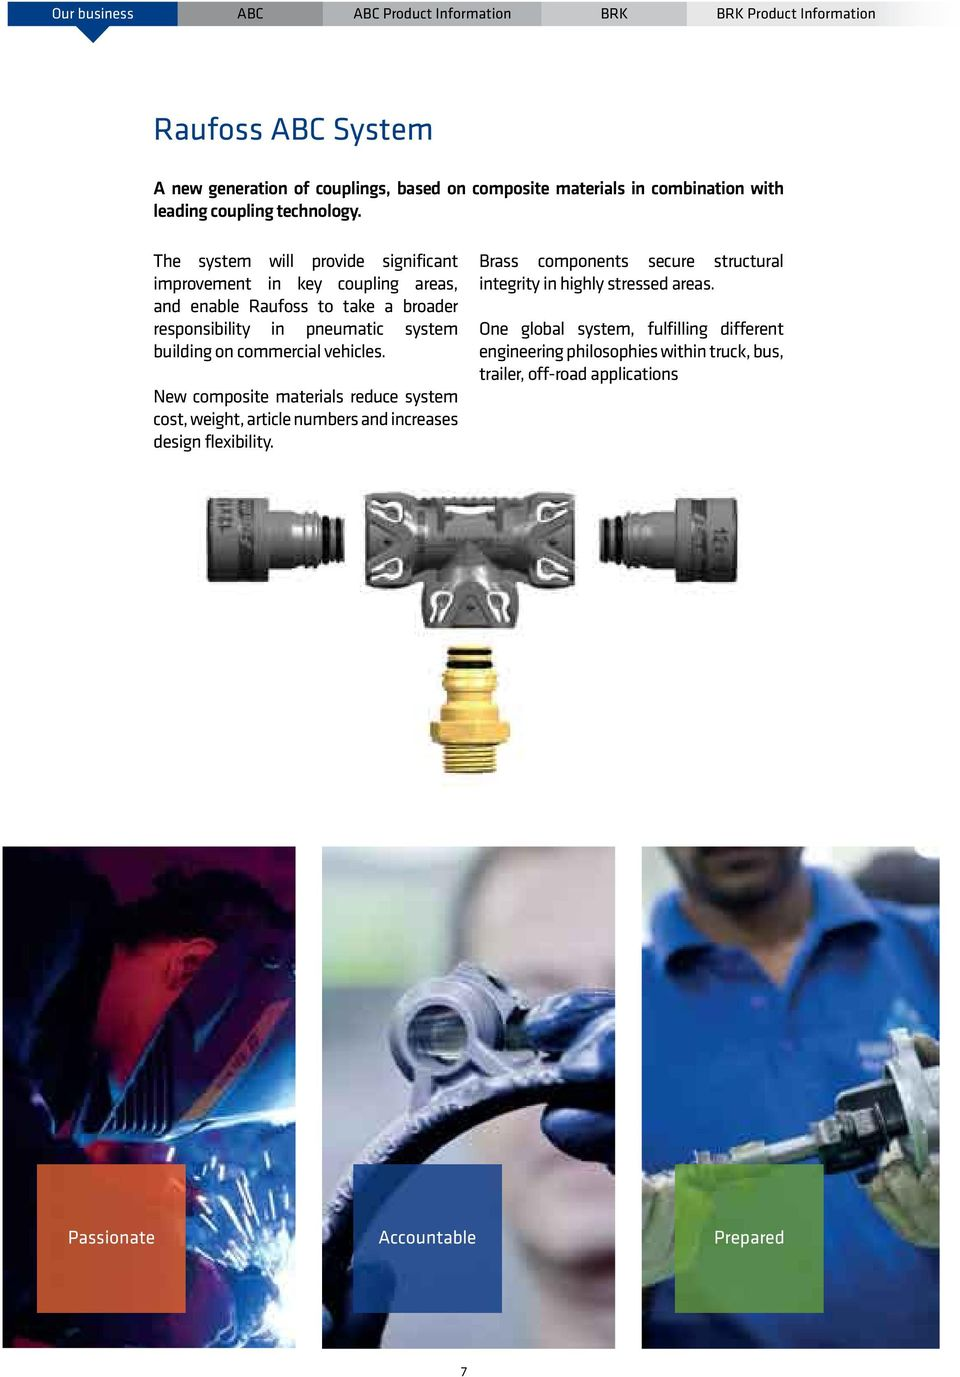 Vehicle Coupling System : Abc system product catalogue raufoss couplings kk